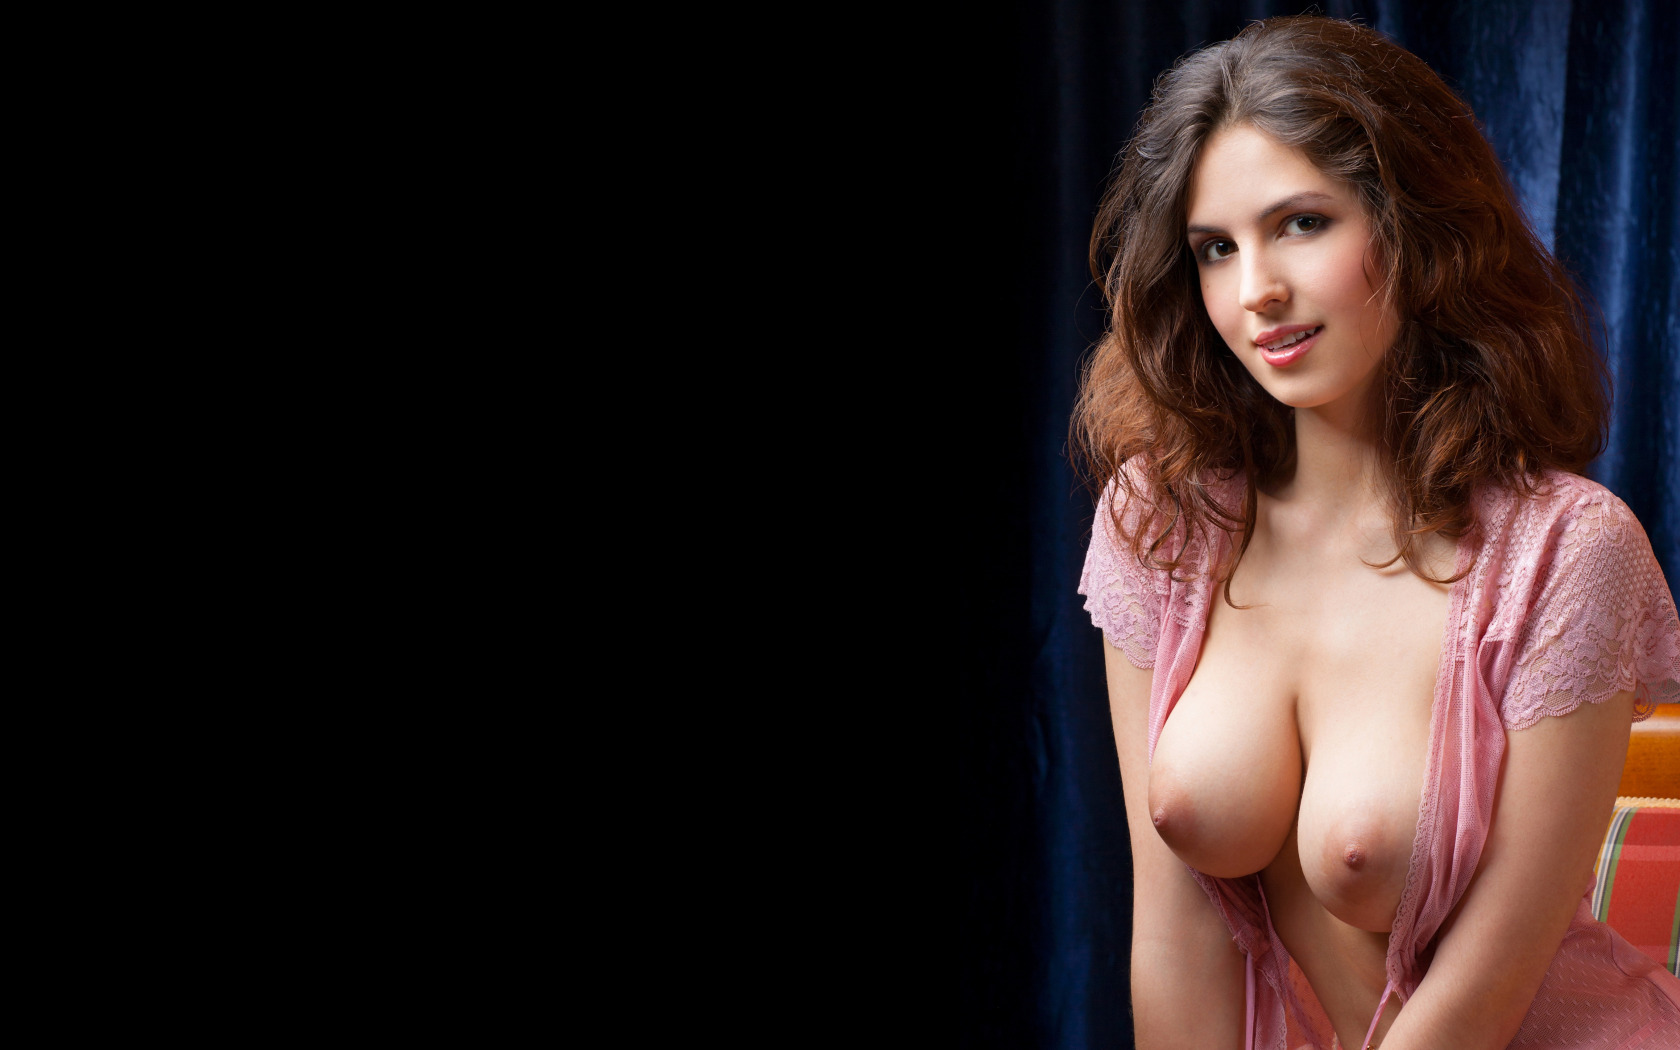 Tits wallpaper nude lovers